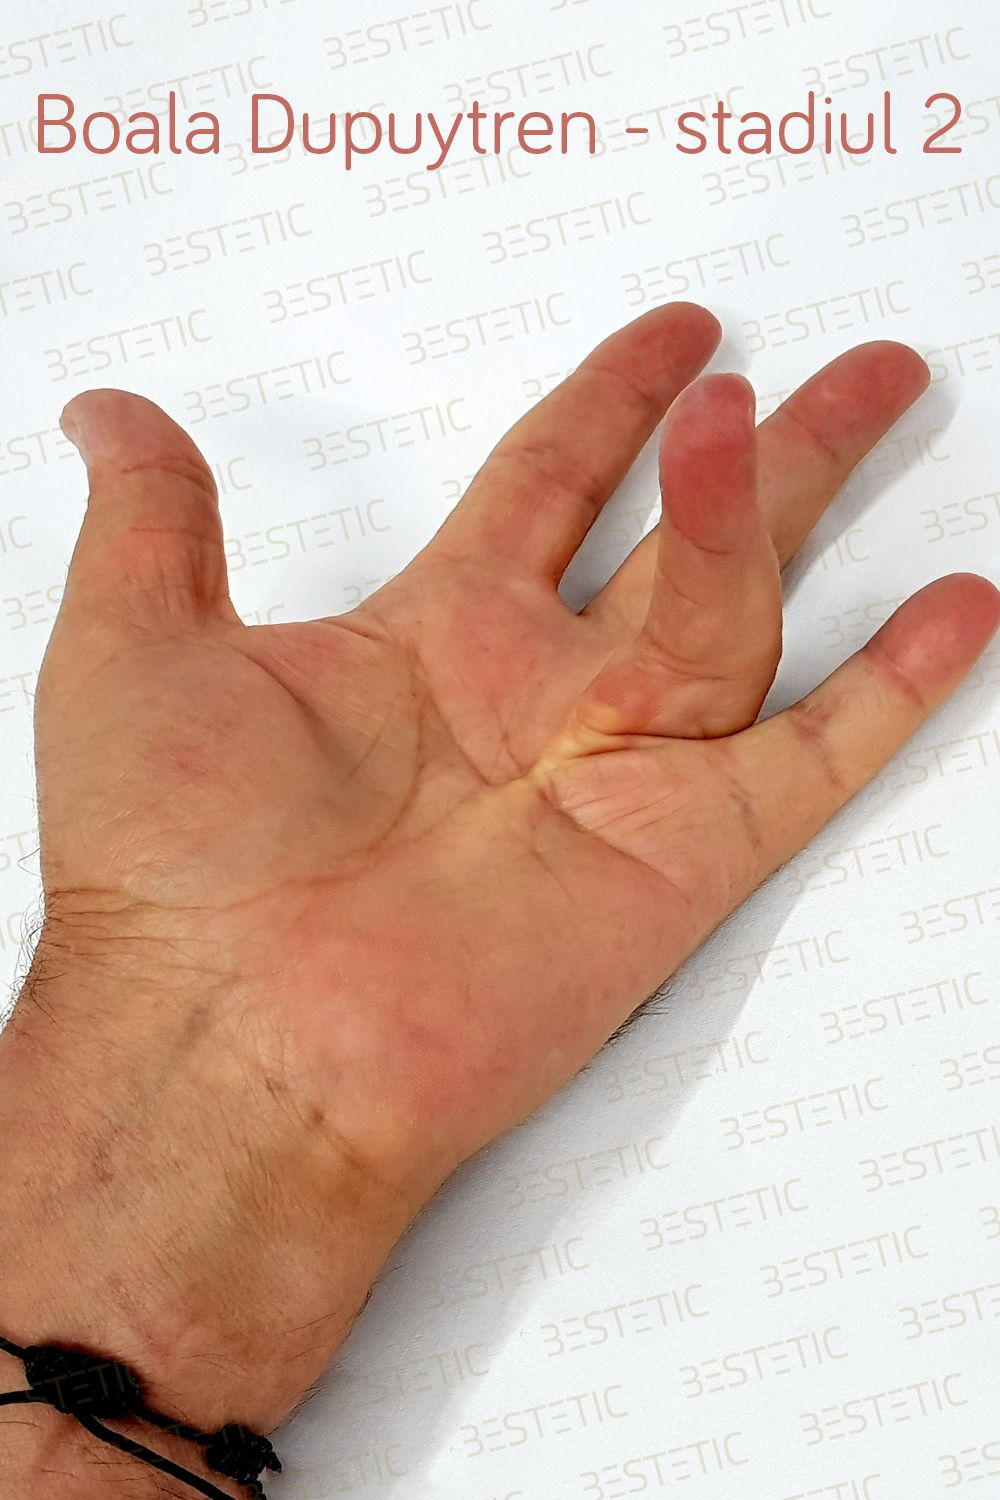 Preventions Of Hai Healthcare Associated Infection Proper Hand